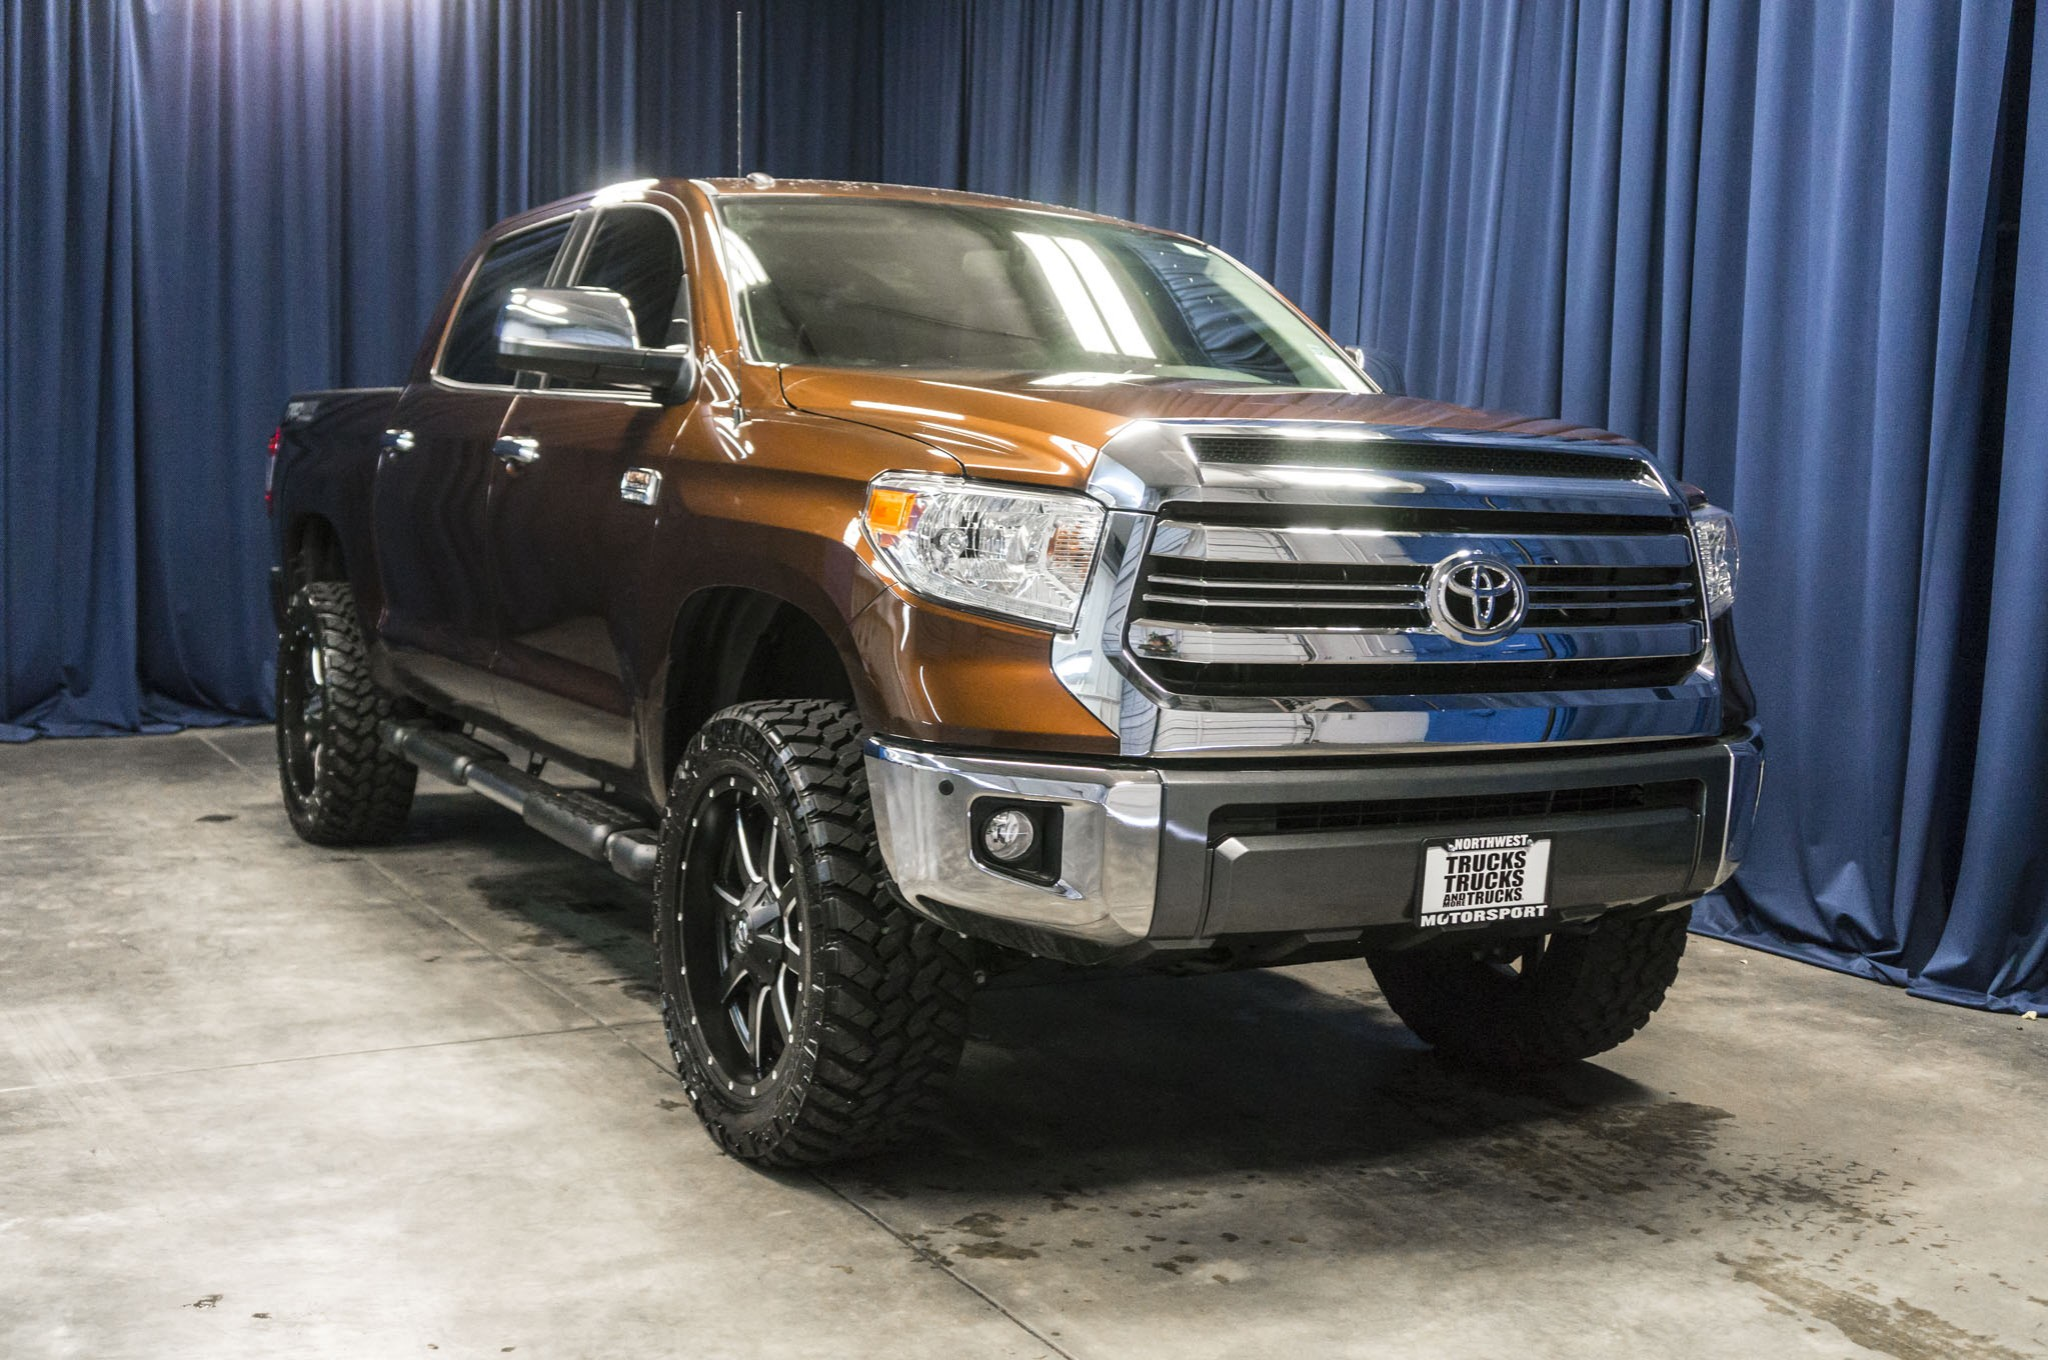 Used Lifted 2016 Toyota Tundra 1794 Edition 4x4 Truck For Sale 40068c